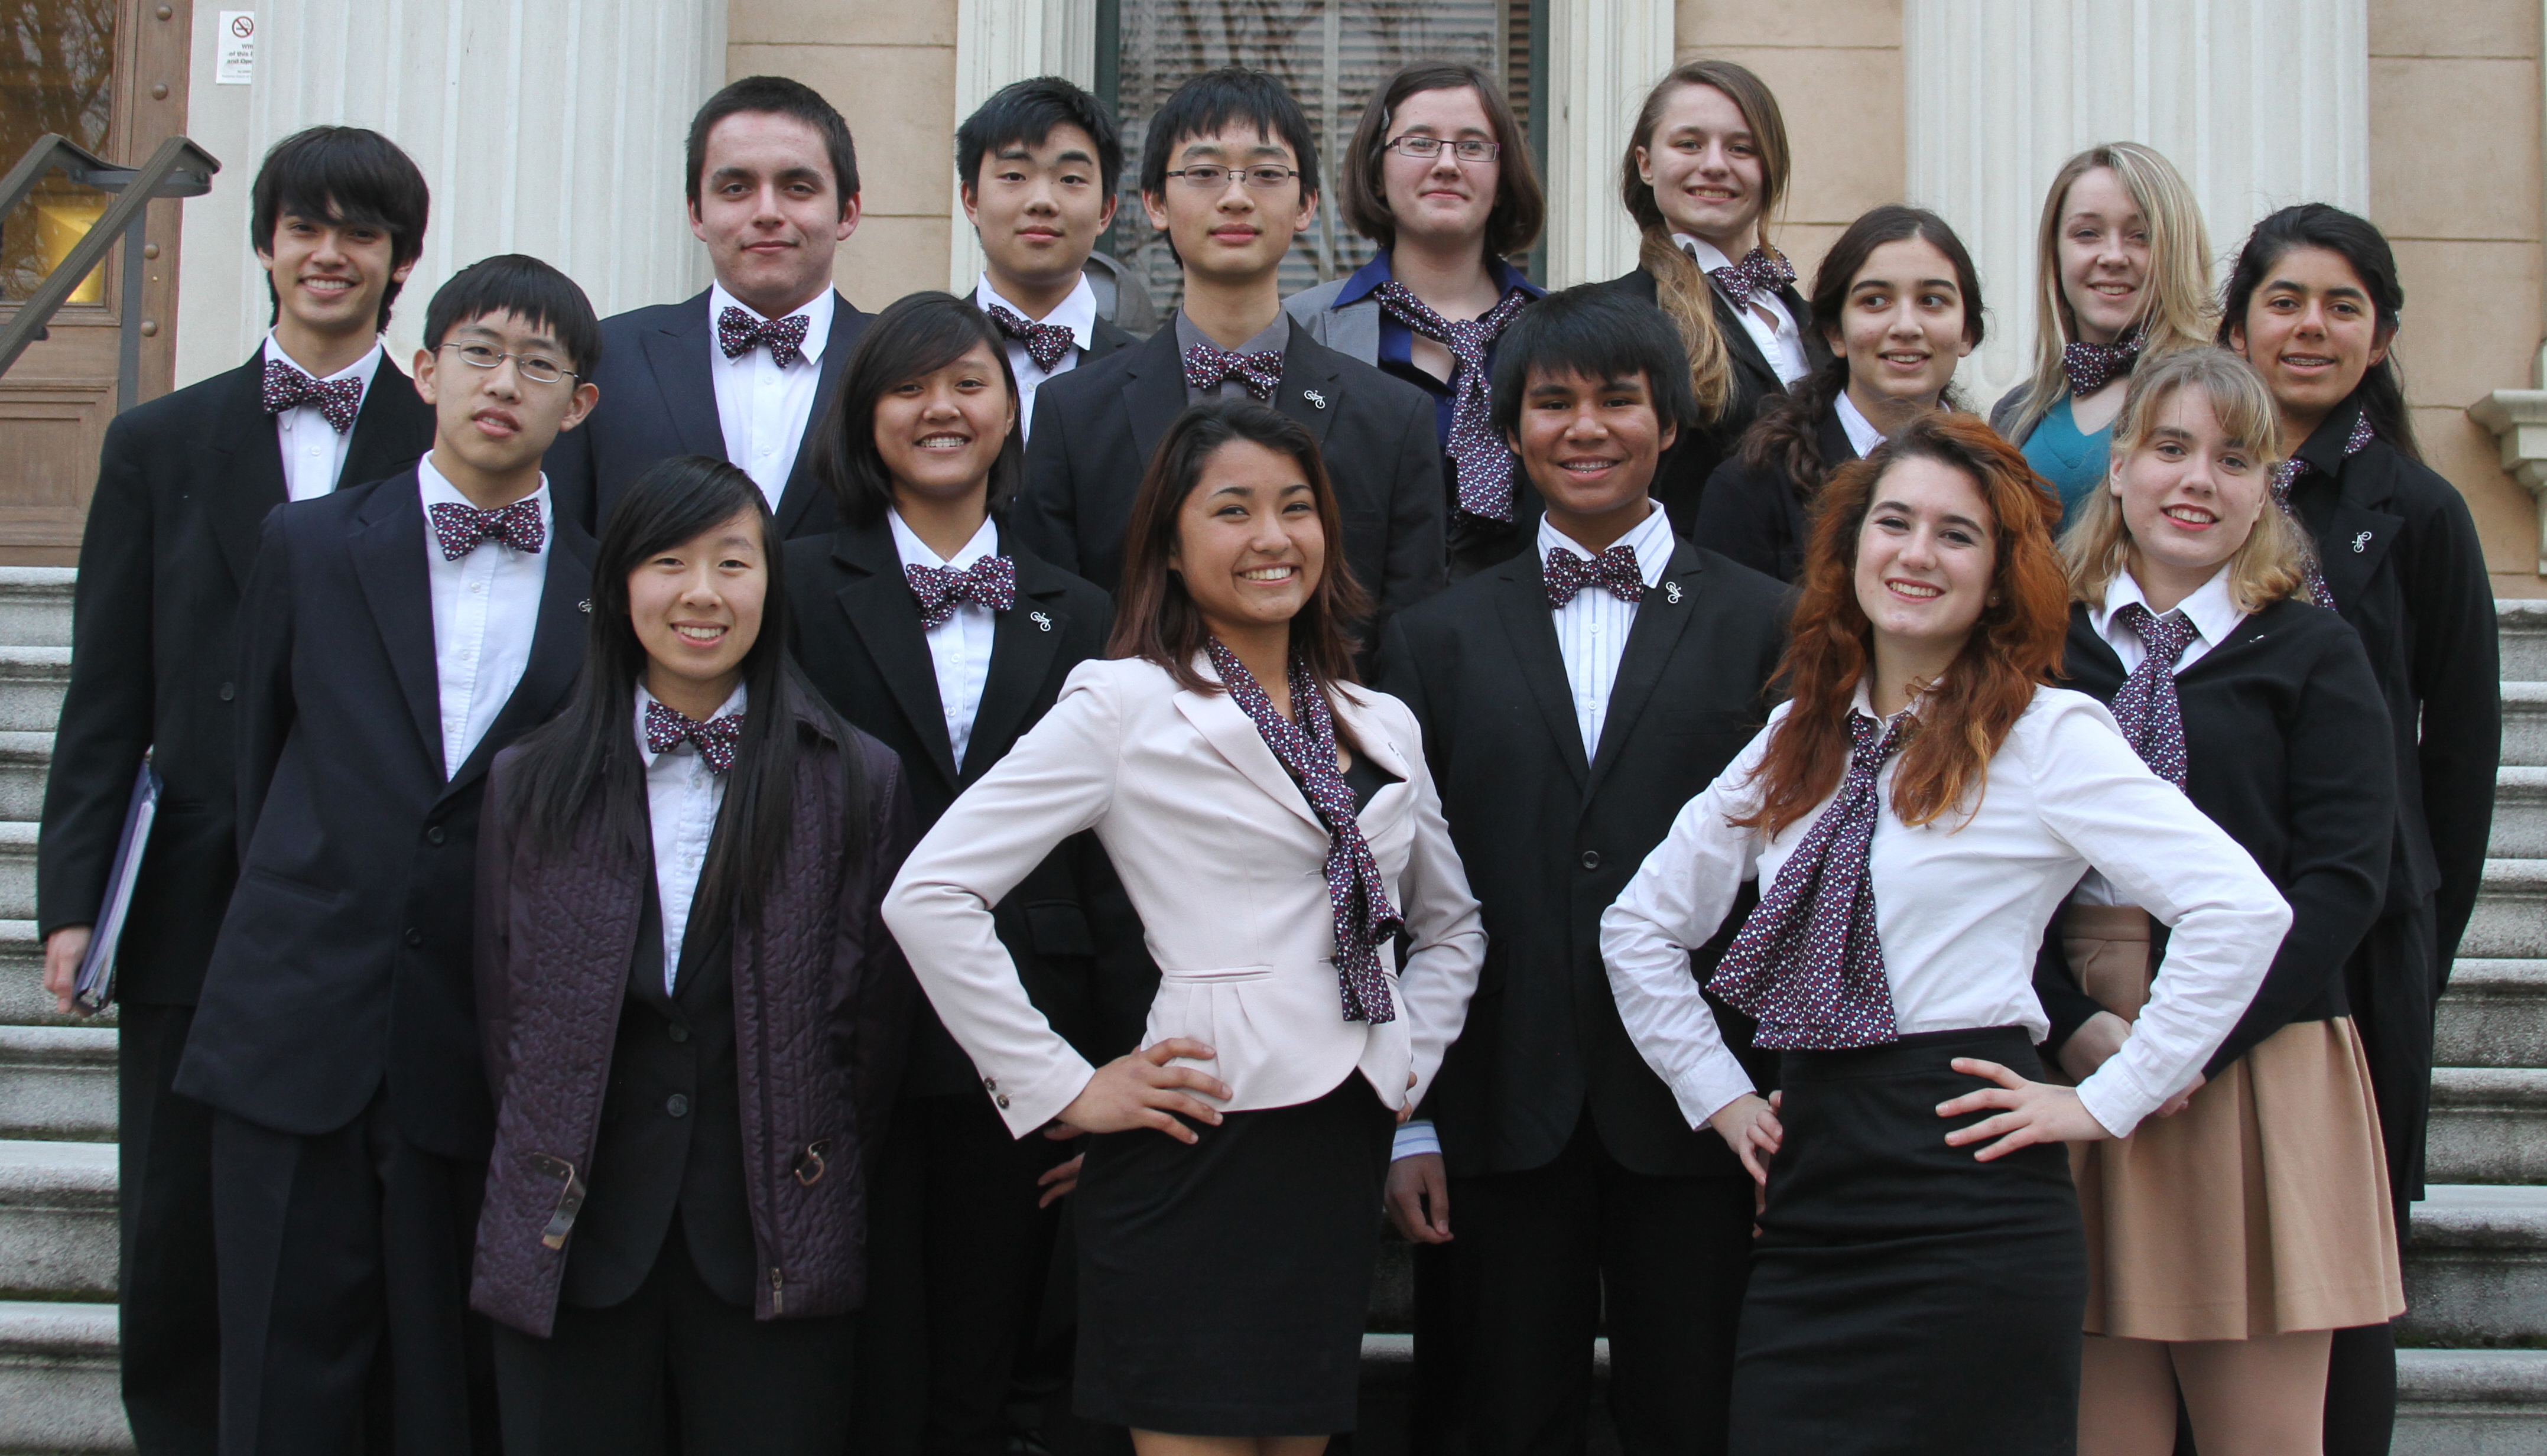 mock trial bow tie law s blog i have enjoyed working the county of education attorneys mock trial coaches judges and students in putting on our annual tour nt